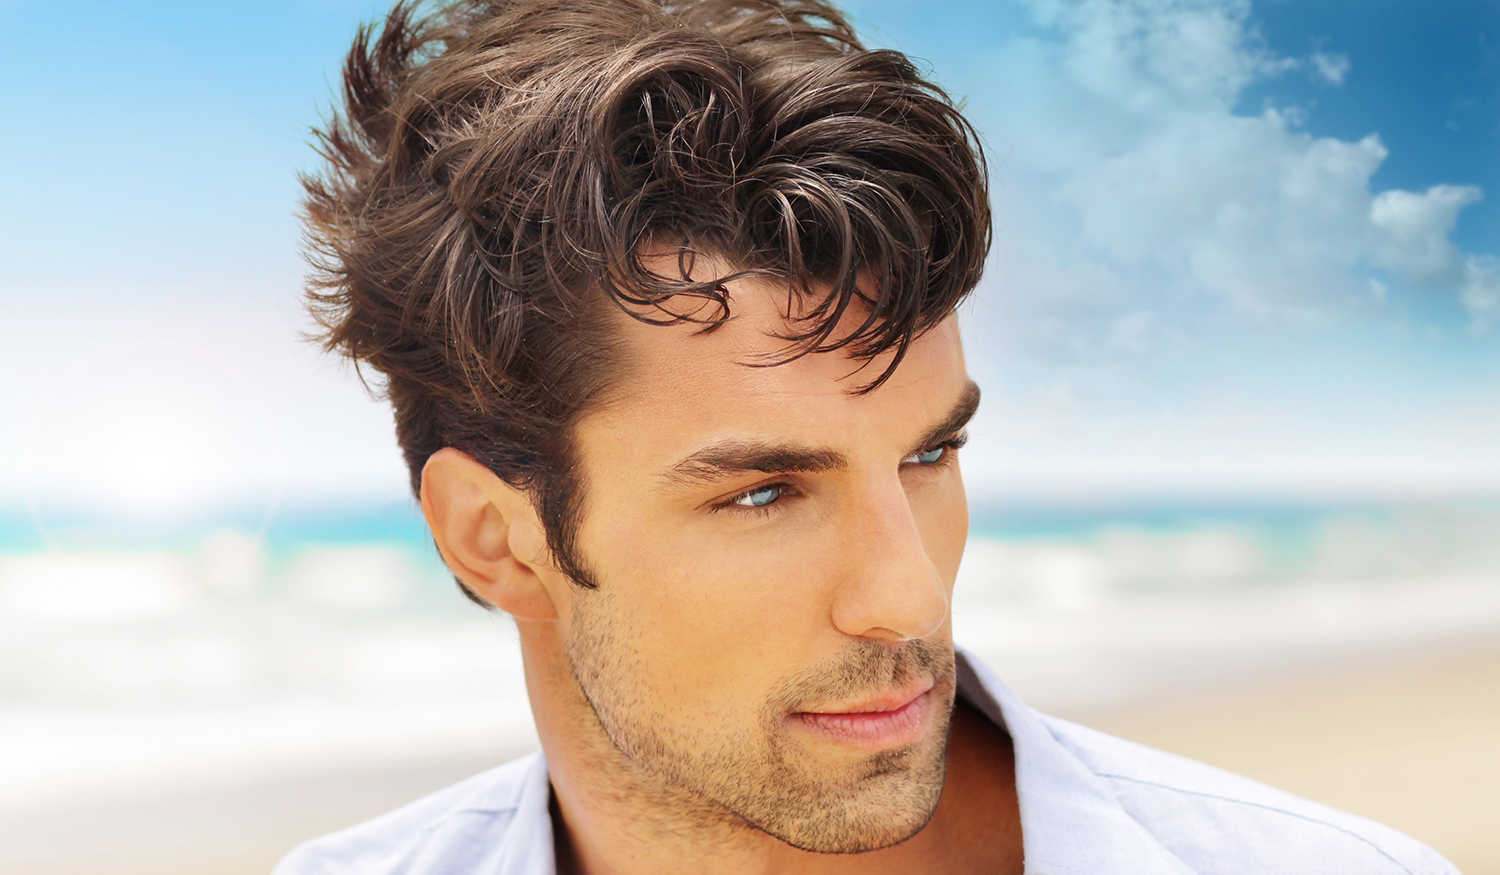 mens hair cuts in Destin at Destin hair salon